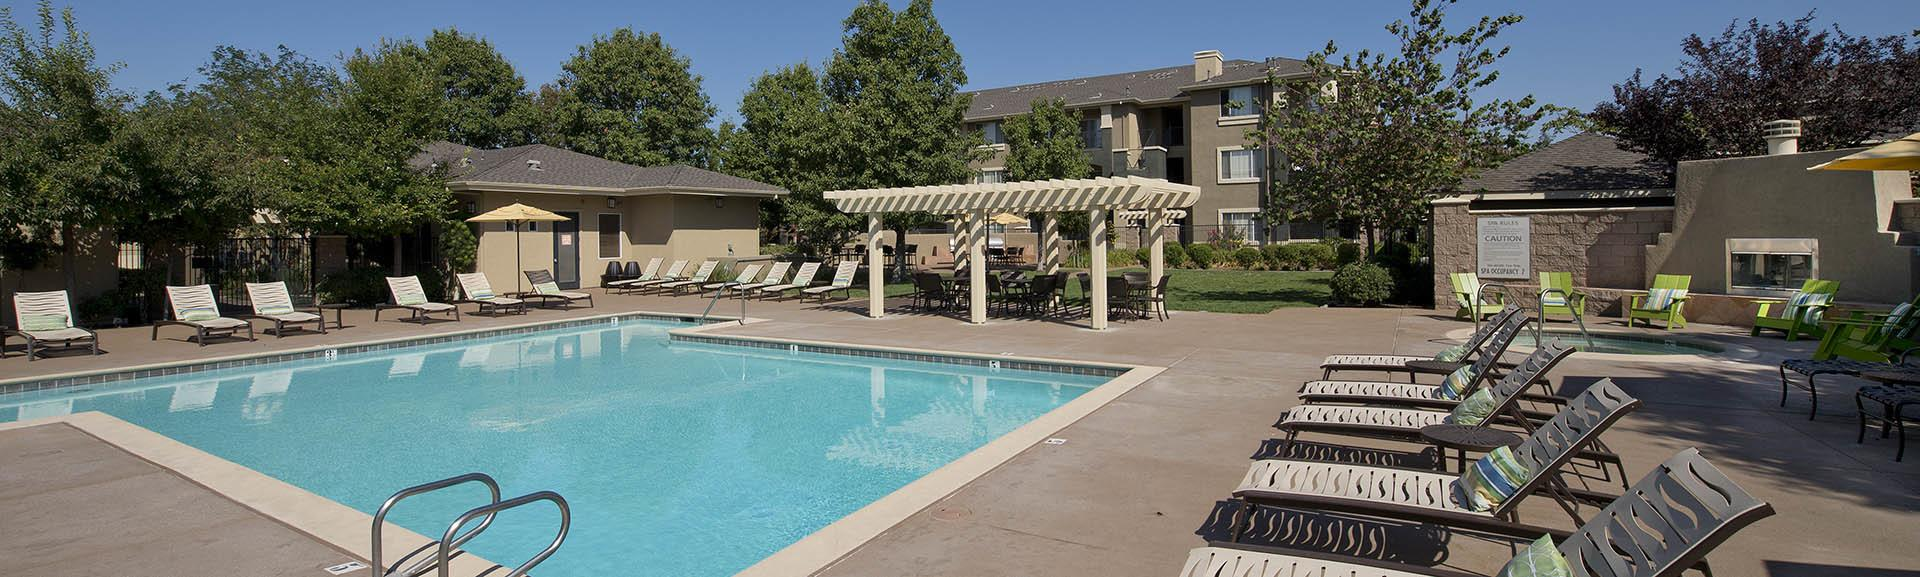 See what we have to offer by visiting Cross Pointe Apartment Homes's amenities page.